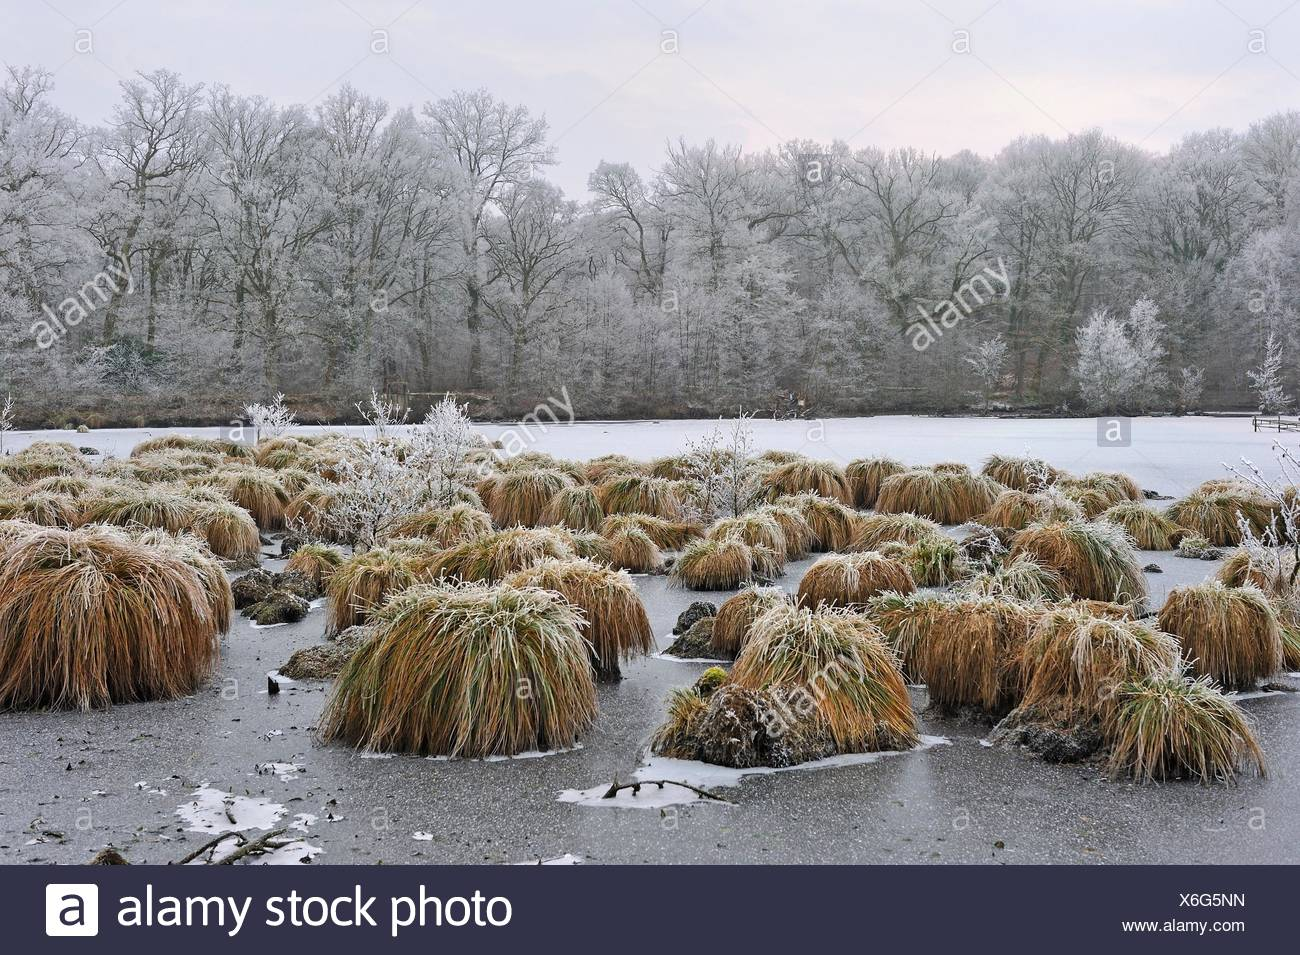 Greater tussok-sedge (Carex paniculata) in the pond of Guiperreux, Forest of Rambouillet, Haute Vallee de Chevreuse Regional Natural Park, Yvelines - Stock Image